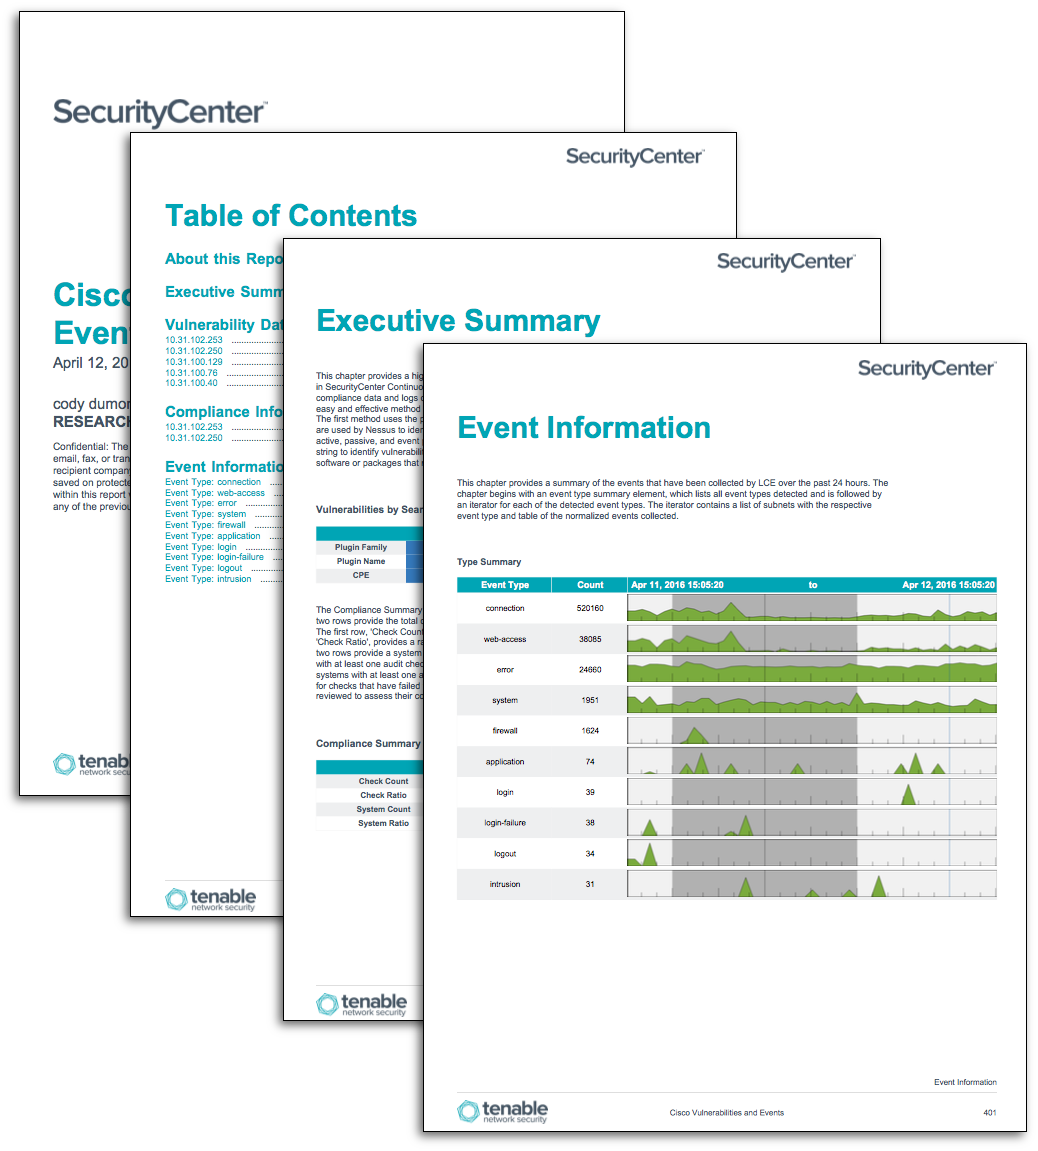 Cisco Vulnerabilities and Events